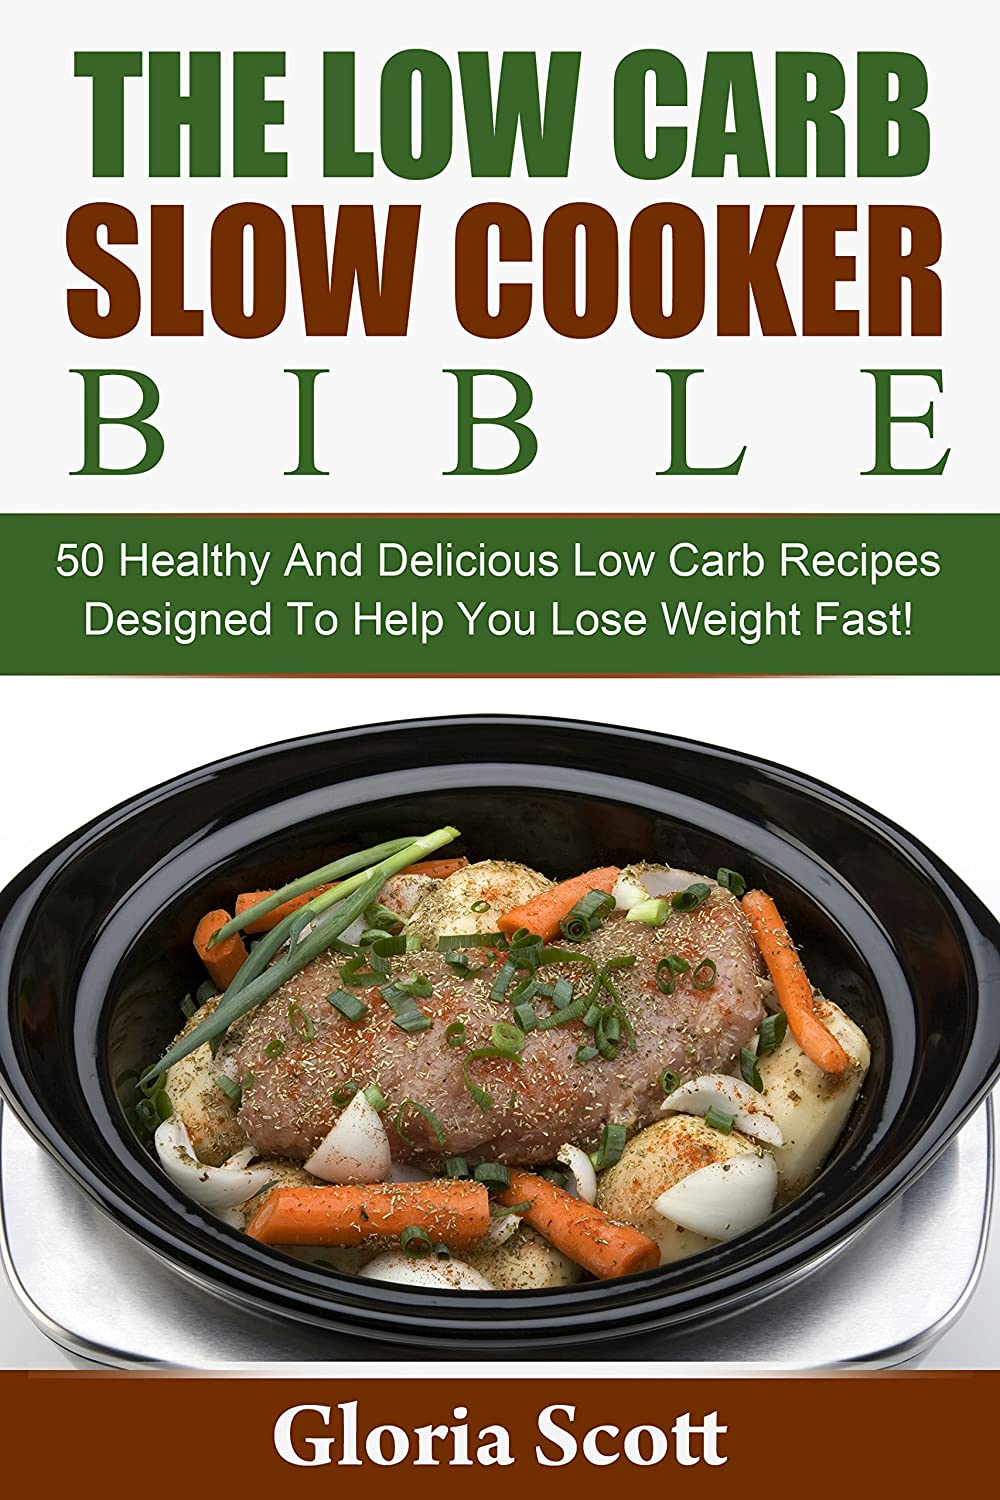 http://www.amazon.com/The-Carb-Slow-Cooker-Bible-ebook/dp/B00OEDIPMO/ref=as_sl_pc_ss_til?tag=lettfromahome-20&linkCode=w01&linkId=BDVIR7BL3PNDYY3D&creativeASIN=B00OEDIPMO